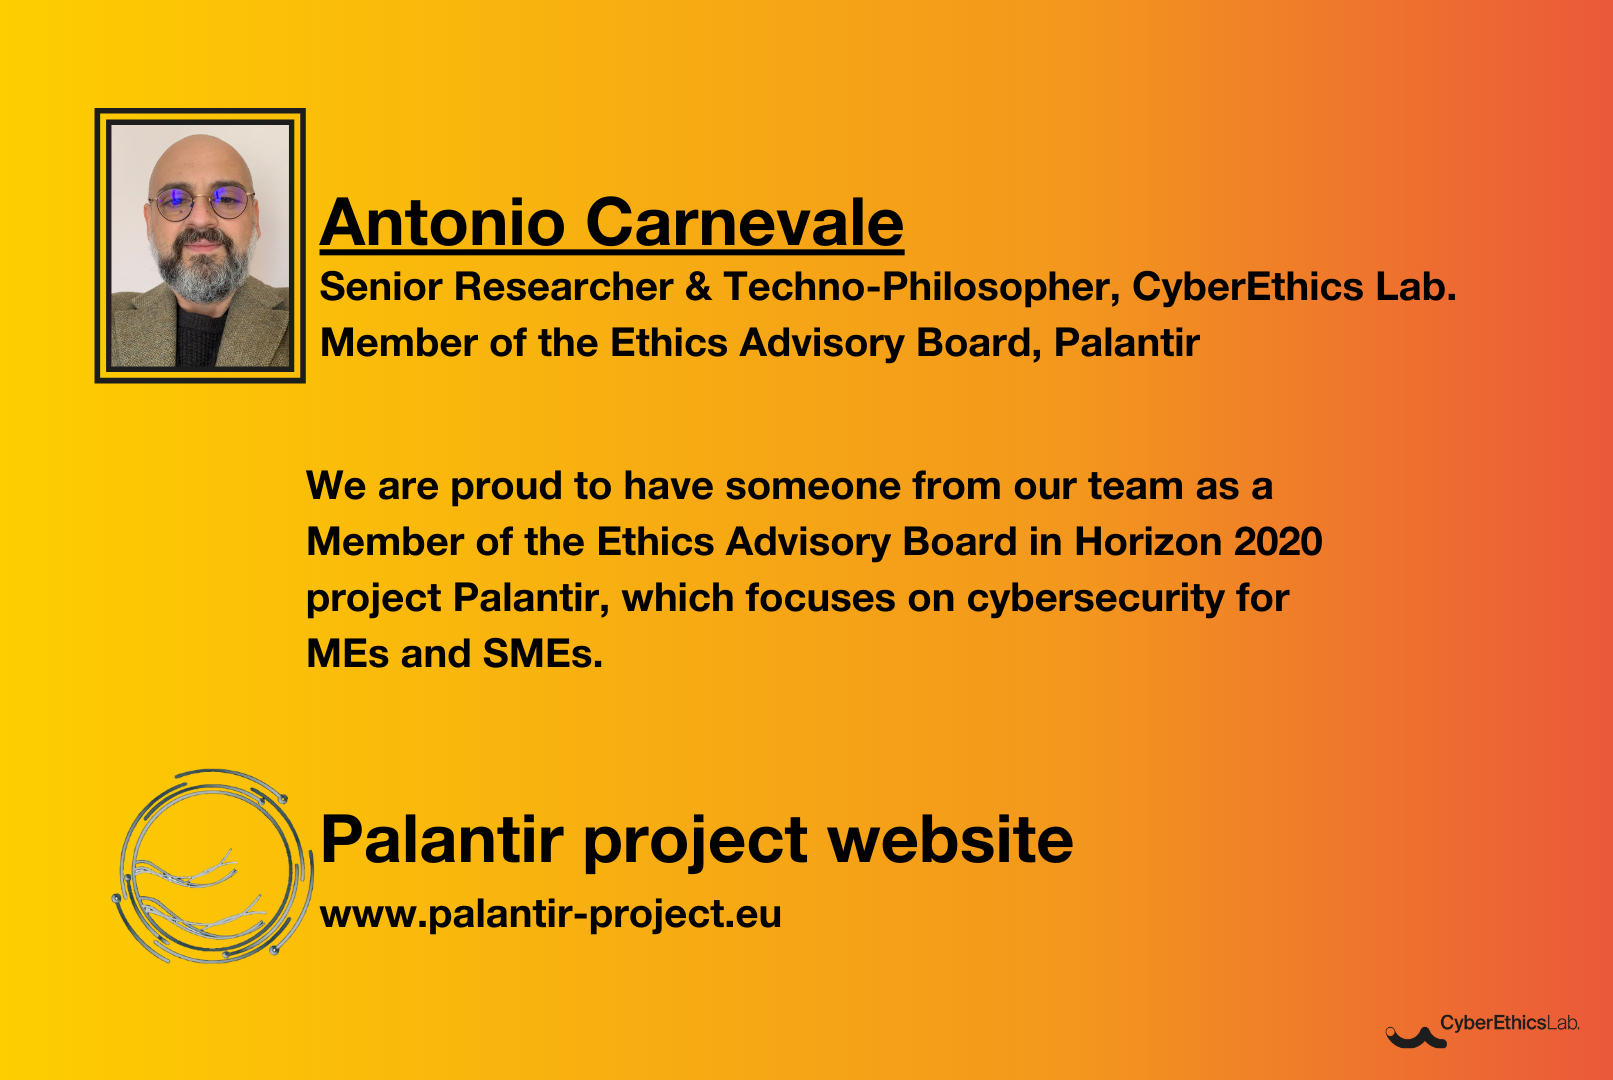 Antonio Carnevale, Senior Researcher and Techno-Philosopher at CyberEthics Lab., is shown against a yellow-orange background in an announcement of his participation in the Ethics Advisory Board in the Palantir project.